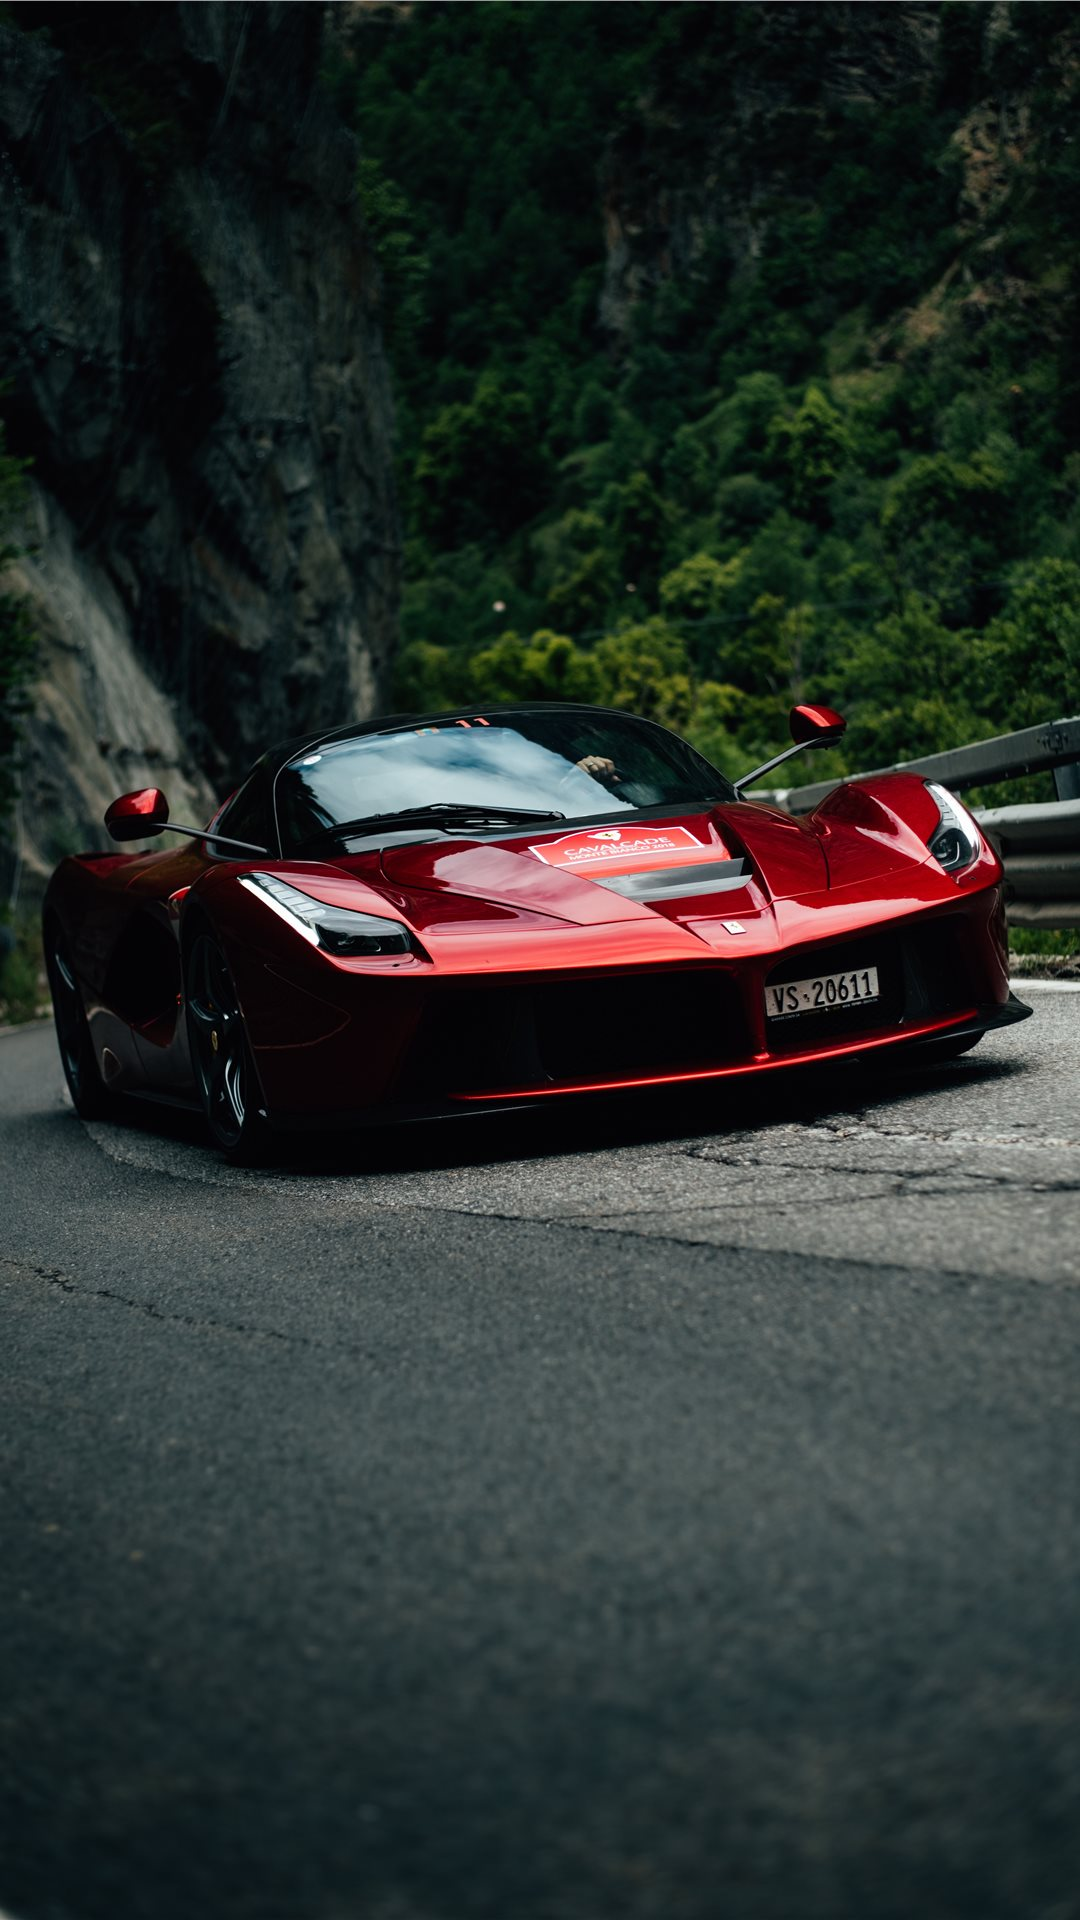 Ferrari Laferrari Iphone Wallpapers